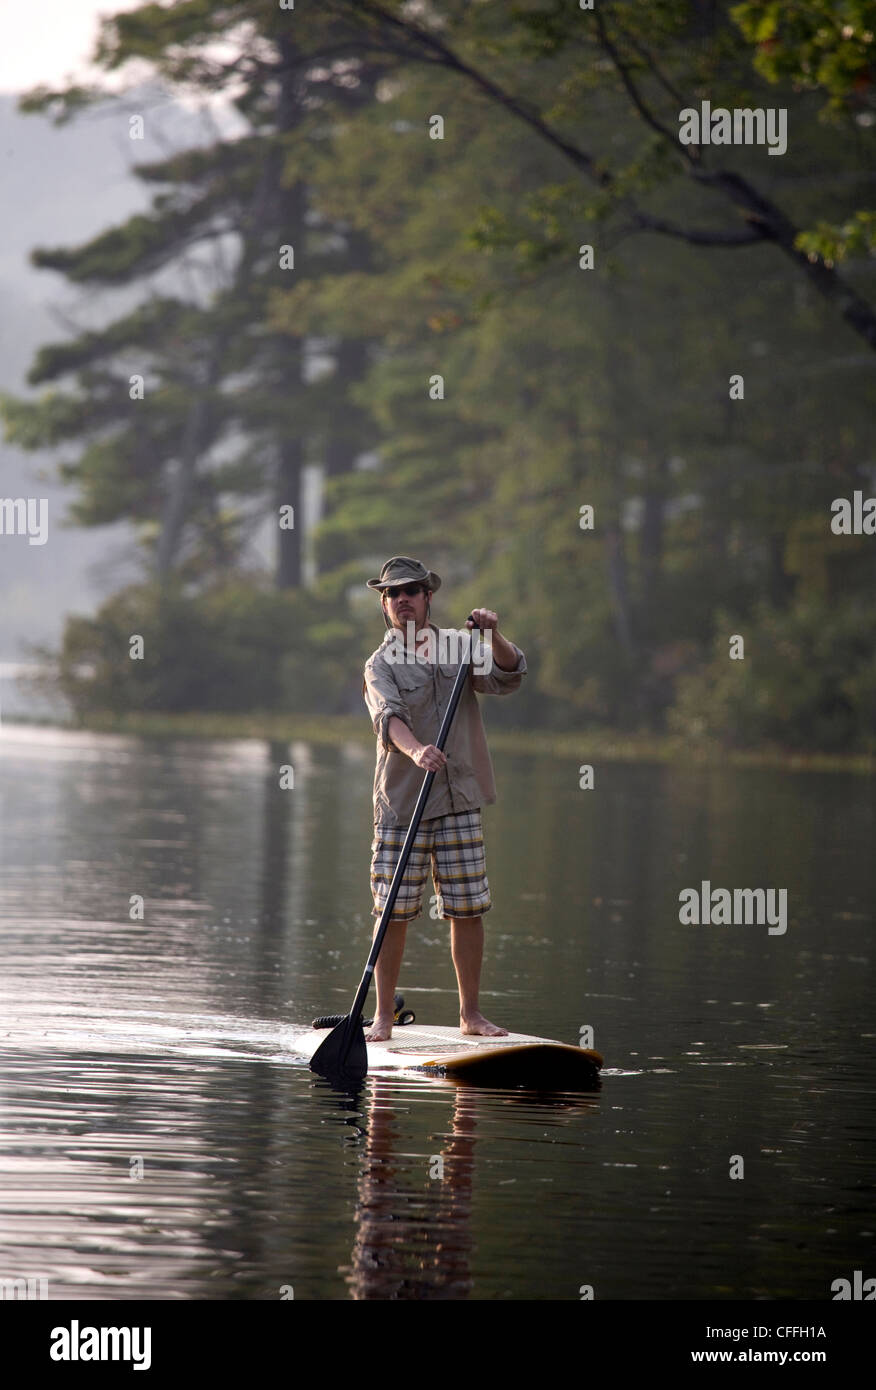 Man rides a SUP on Otter Lake in Greenfield, NH - Stock Image